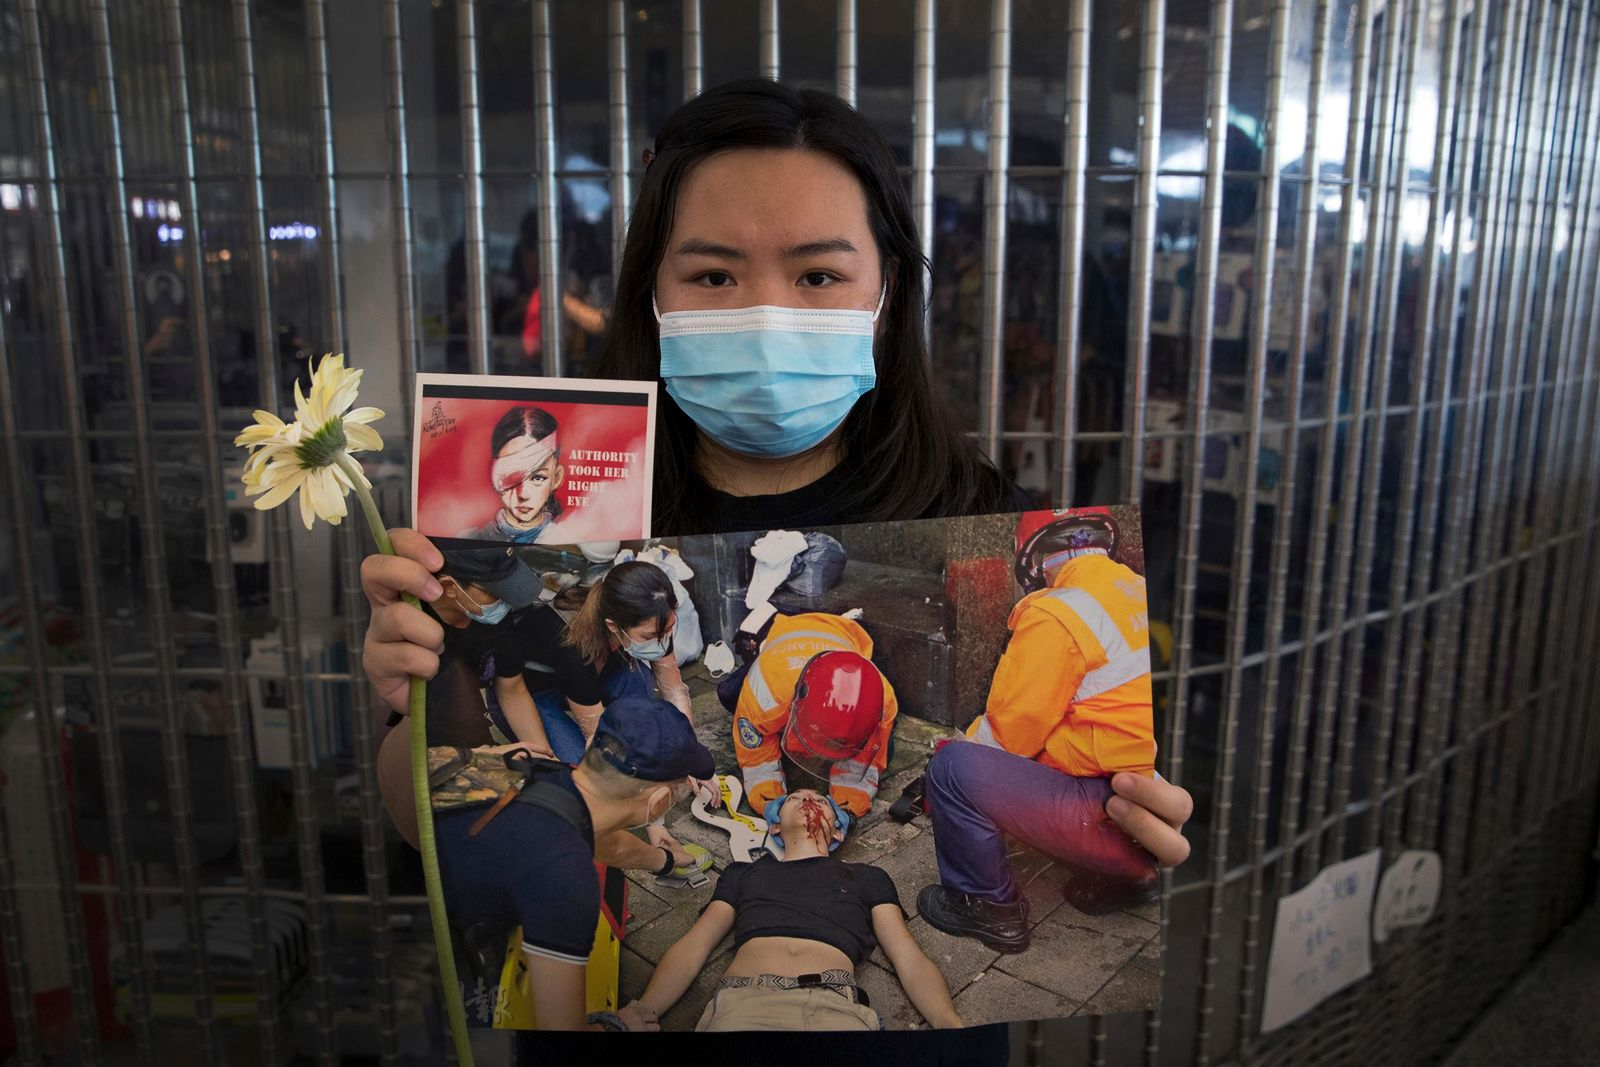 A woman holds a flower and posters showing people injured by police as protesters stage a sit-in rally at he Hong Kong International Airport in Hong Kong, Tuesday, Aug. 13, 2019. Protesters clogged the departure area at Hong Kong's reopened airpor